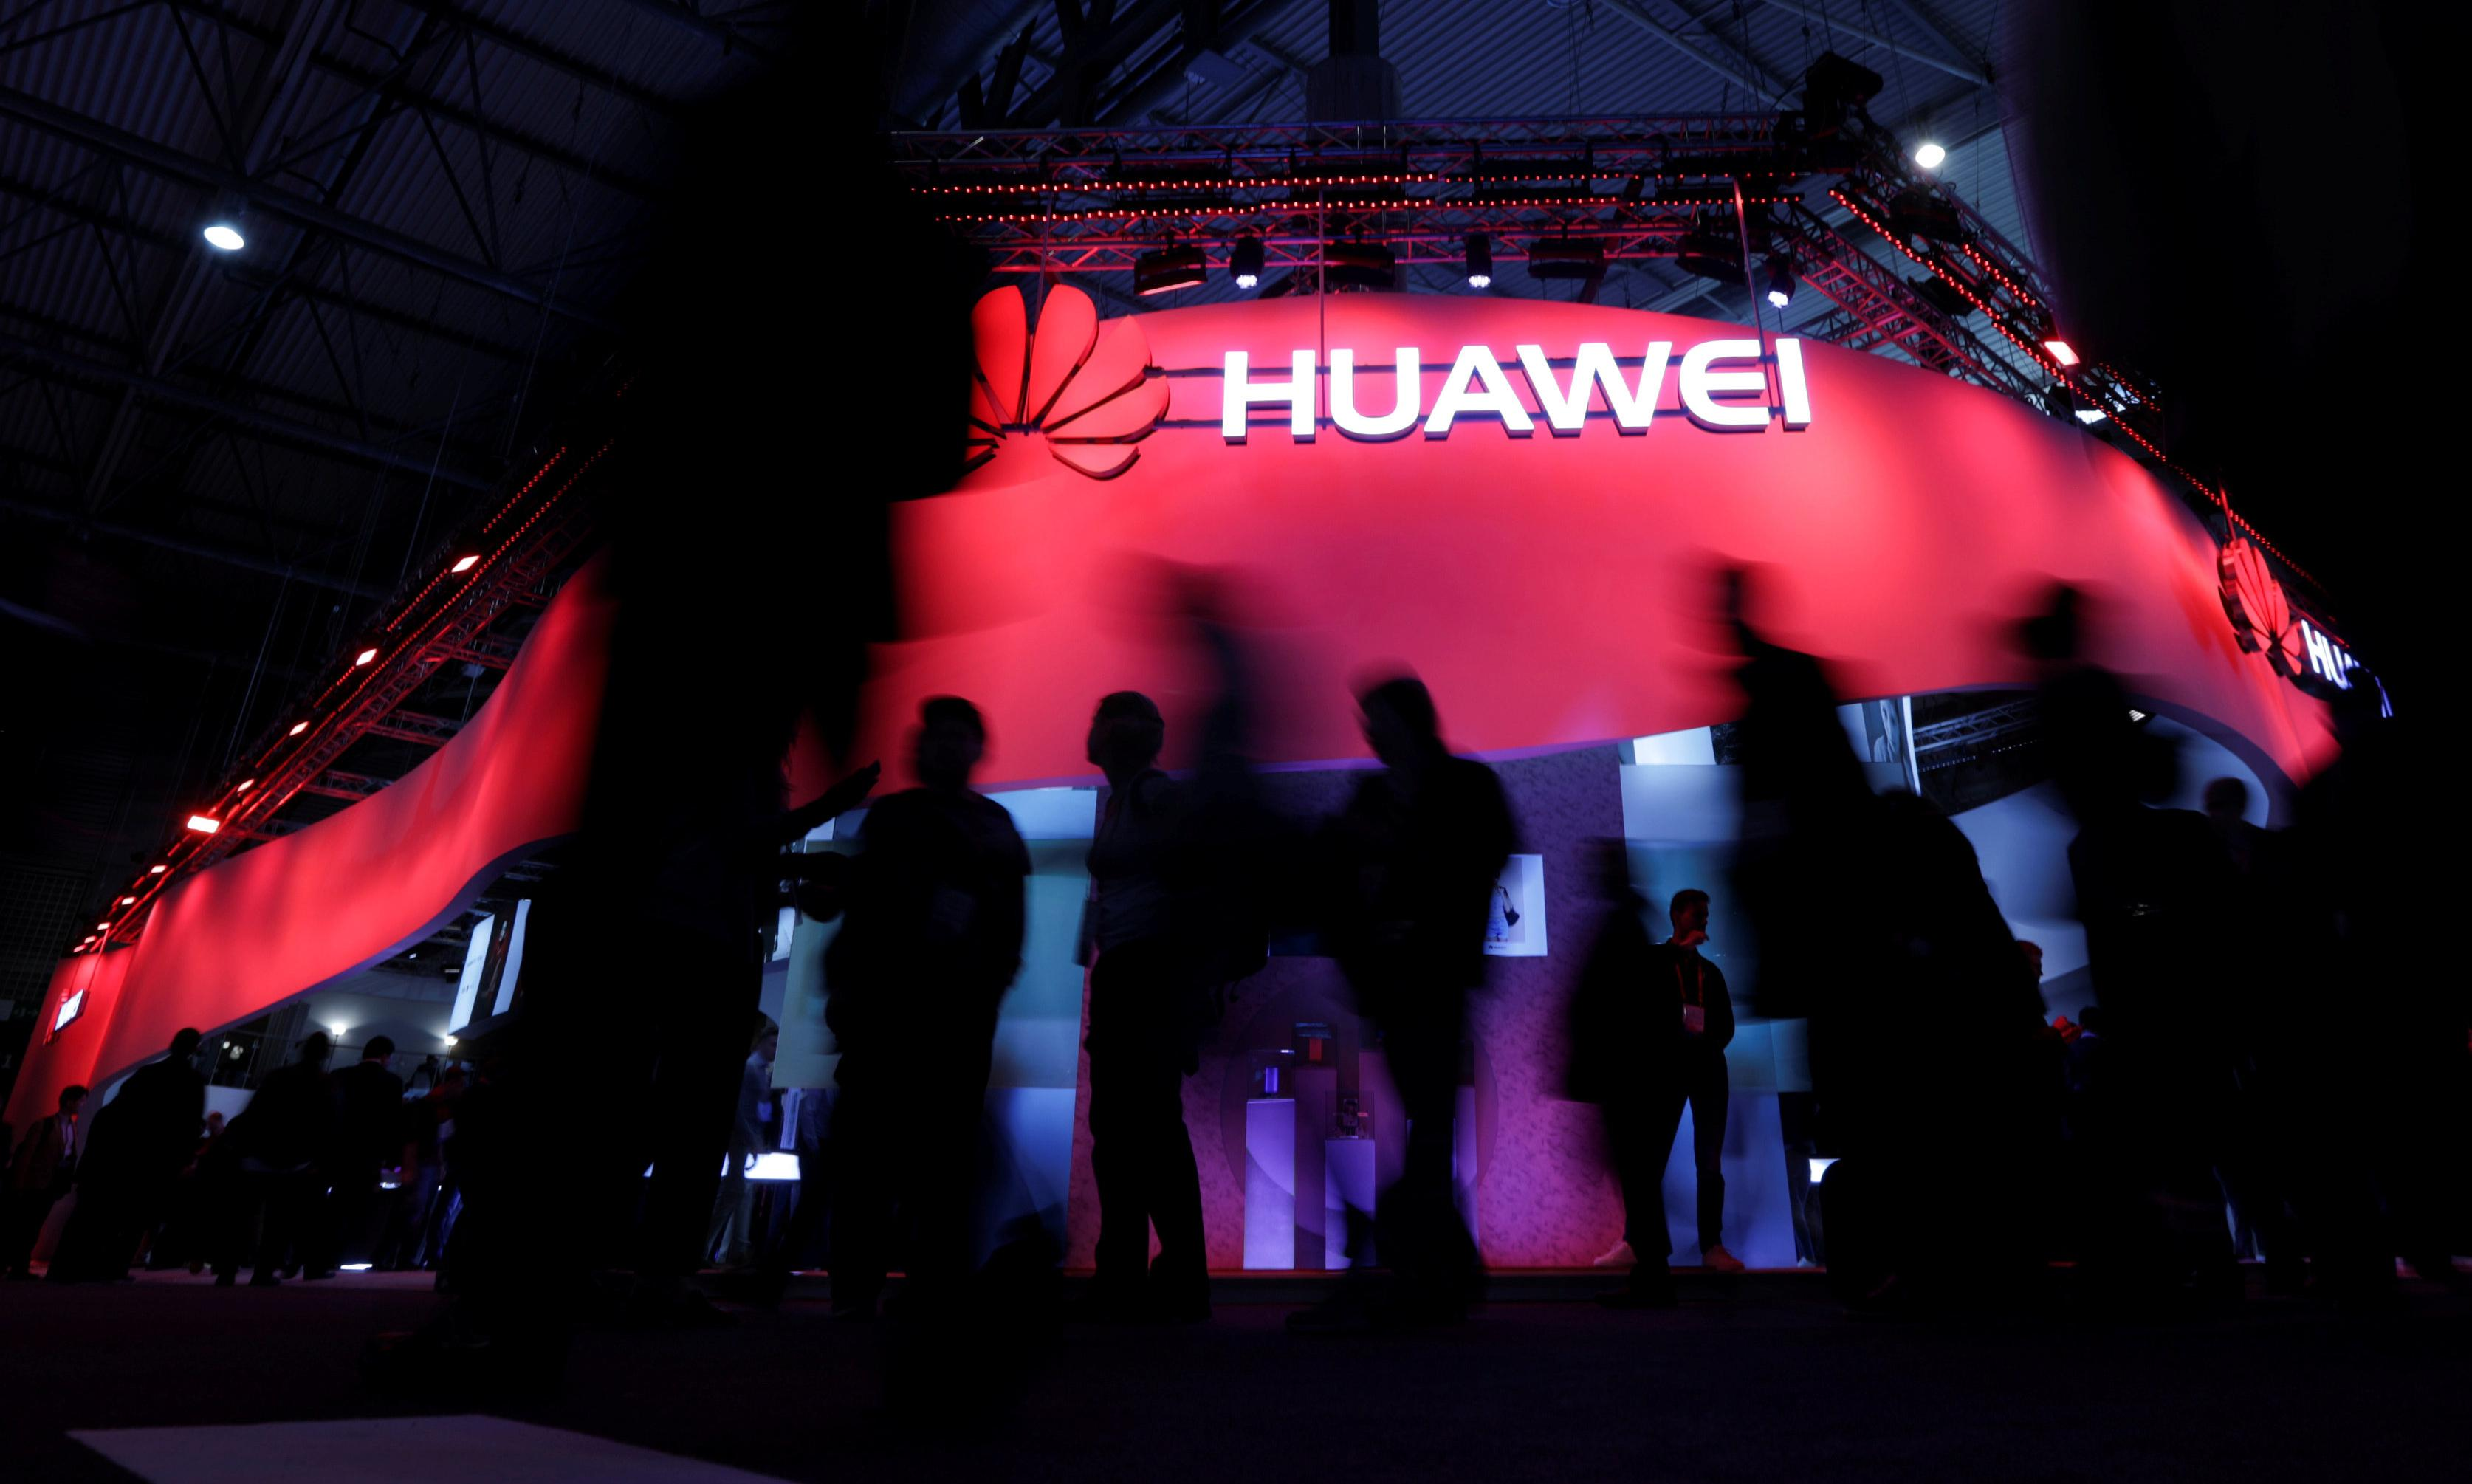 The giant that no one trusts: why Huawei's history haunts it